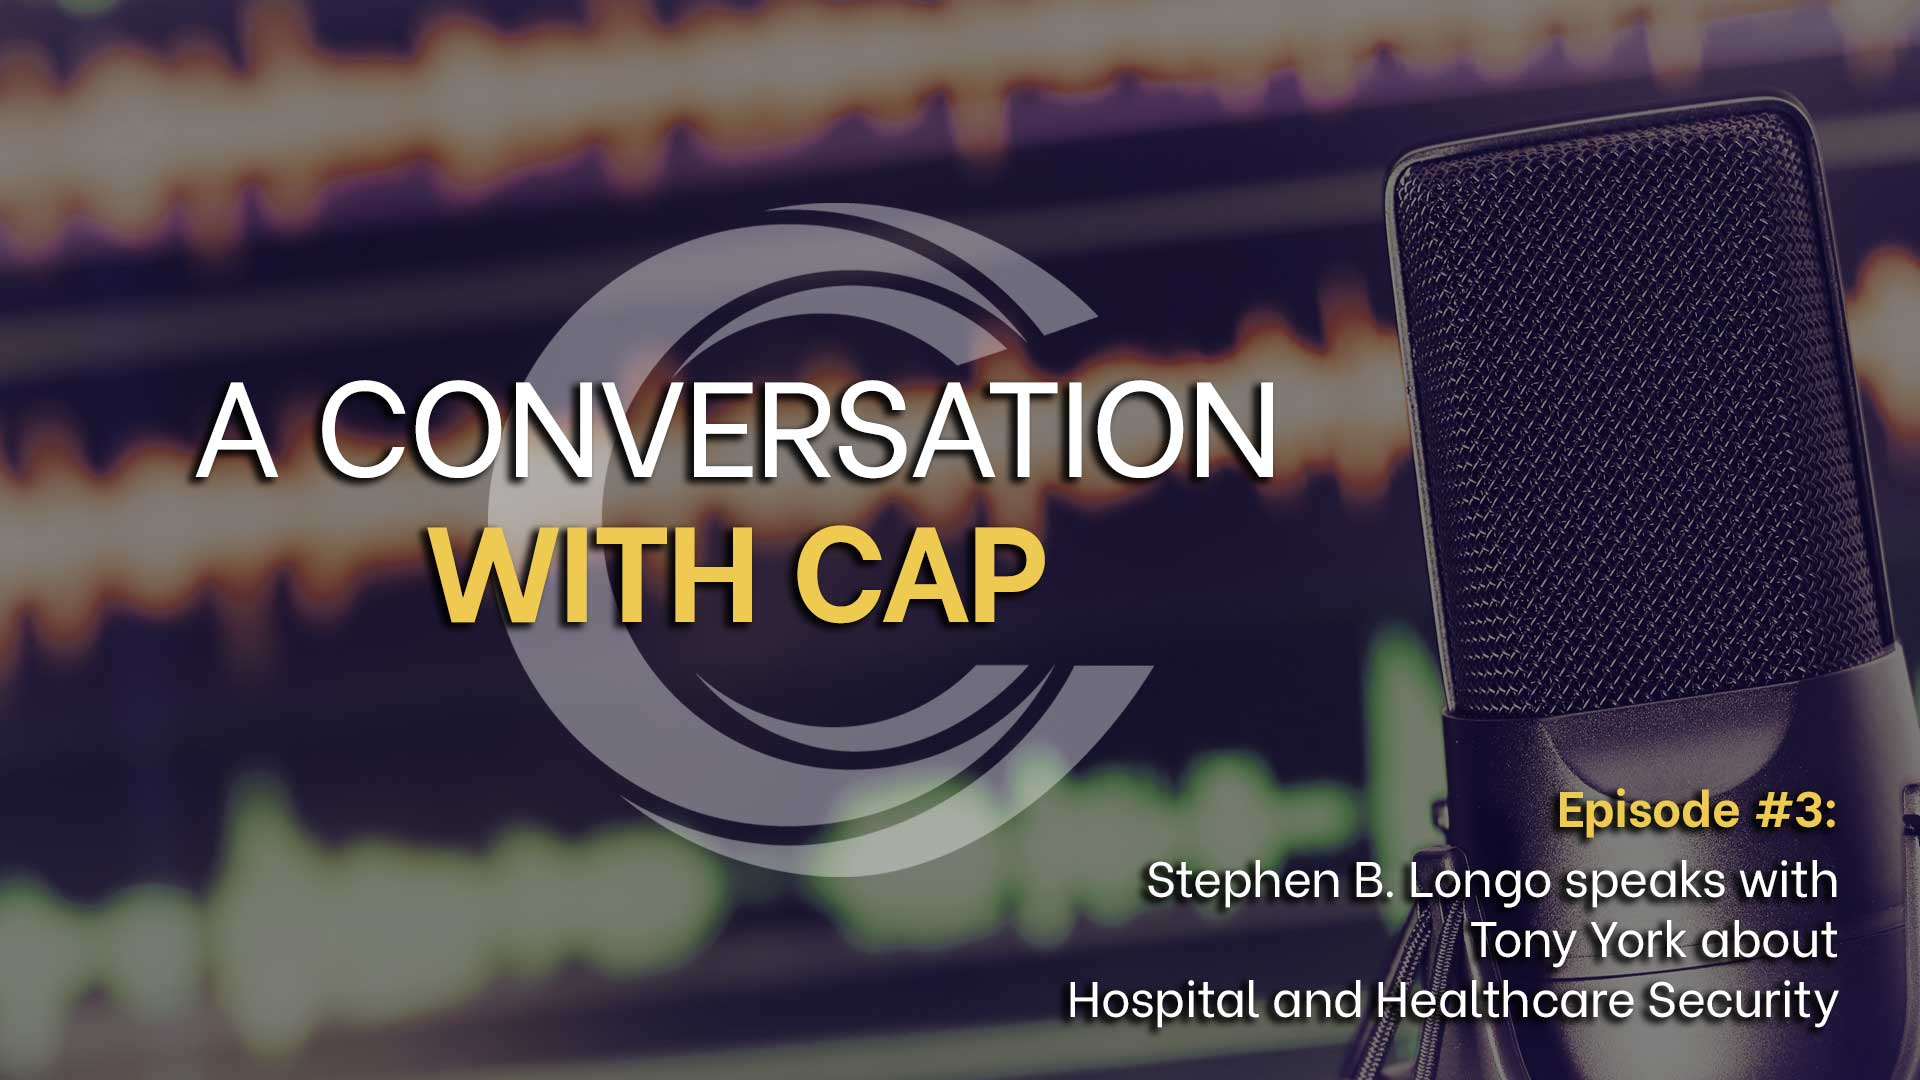 A Conversation with CAP Episode 3 Banner - Hospital and Healthcare Security with Tony York